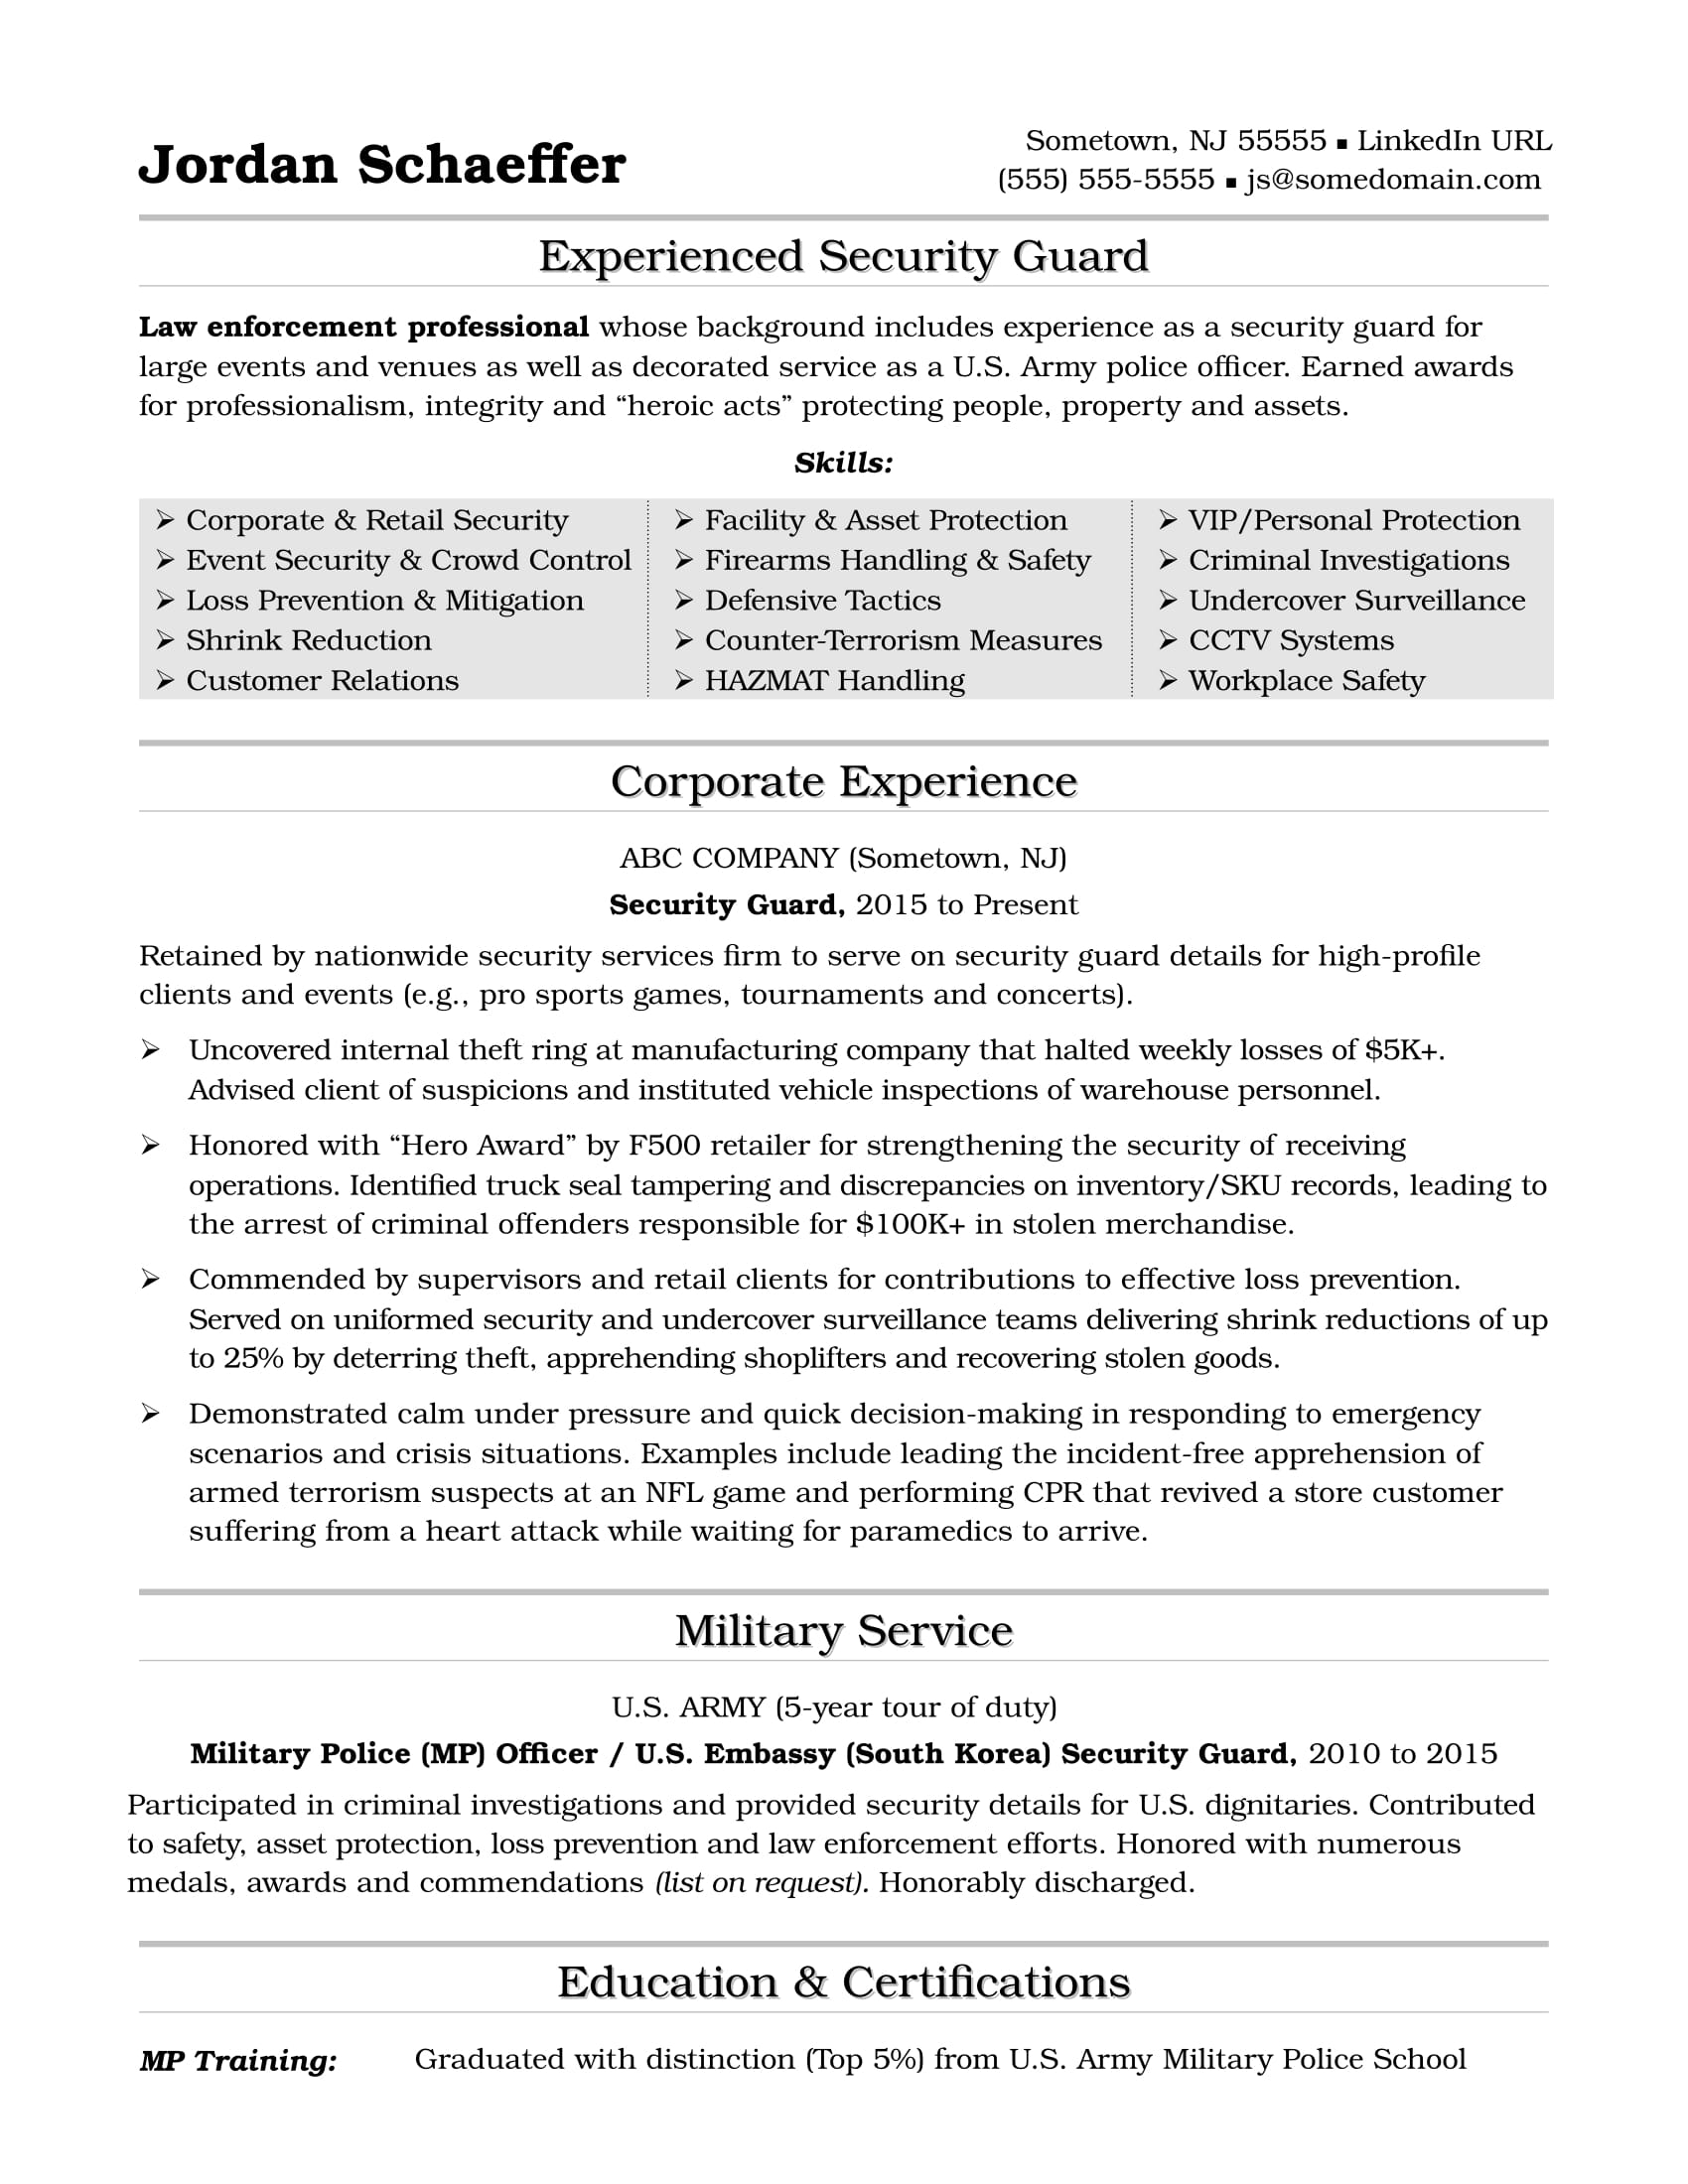 security guard resume sample - Security Guard Resume Example